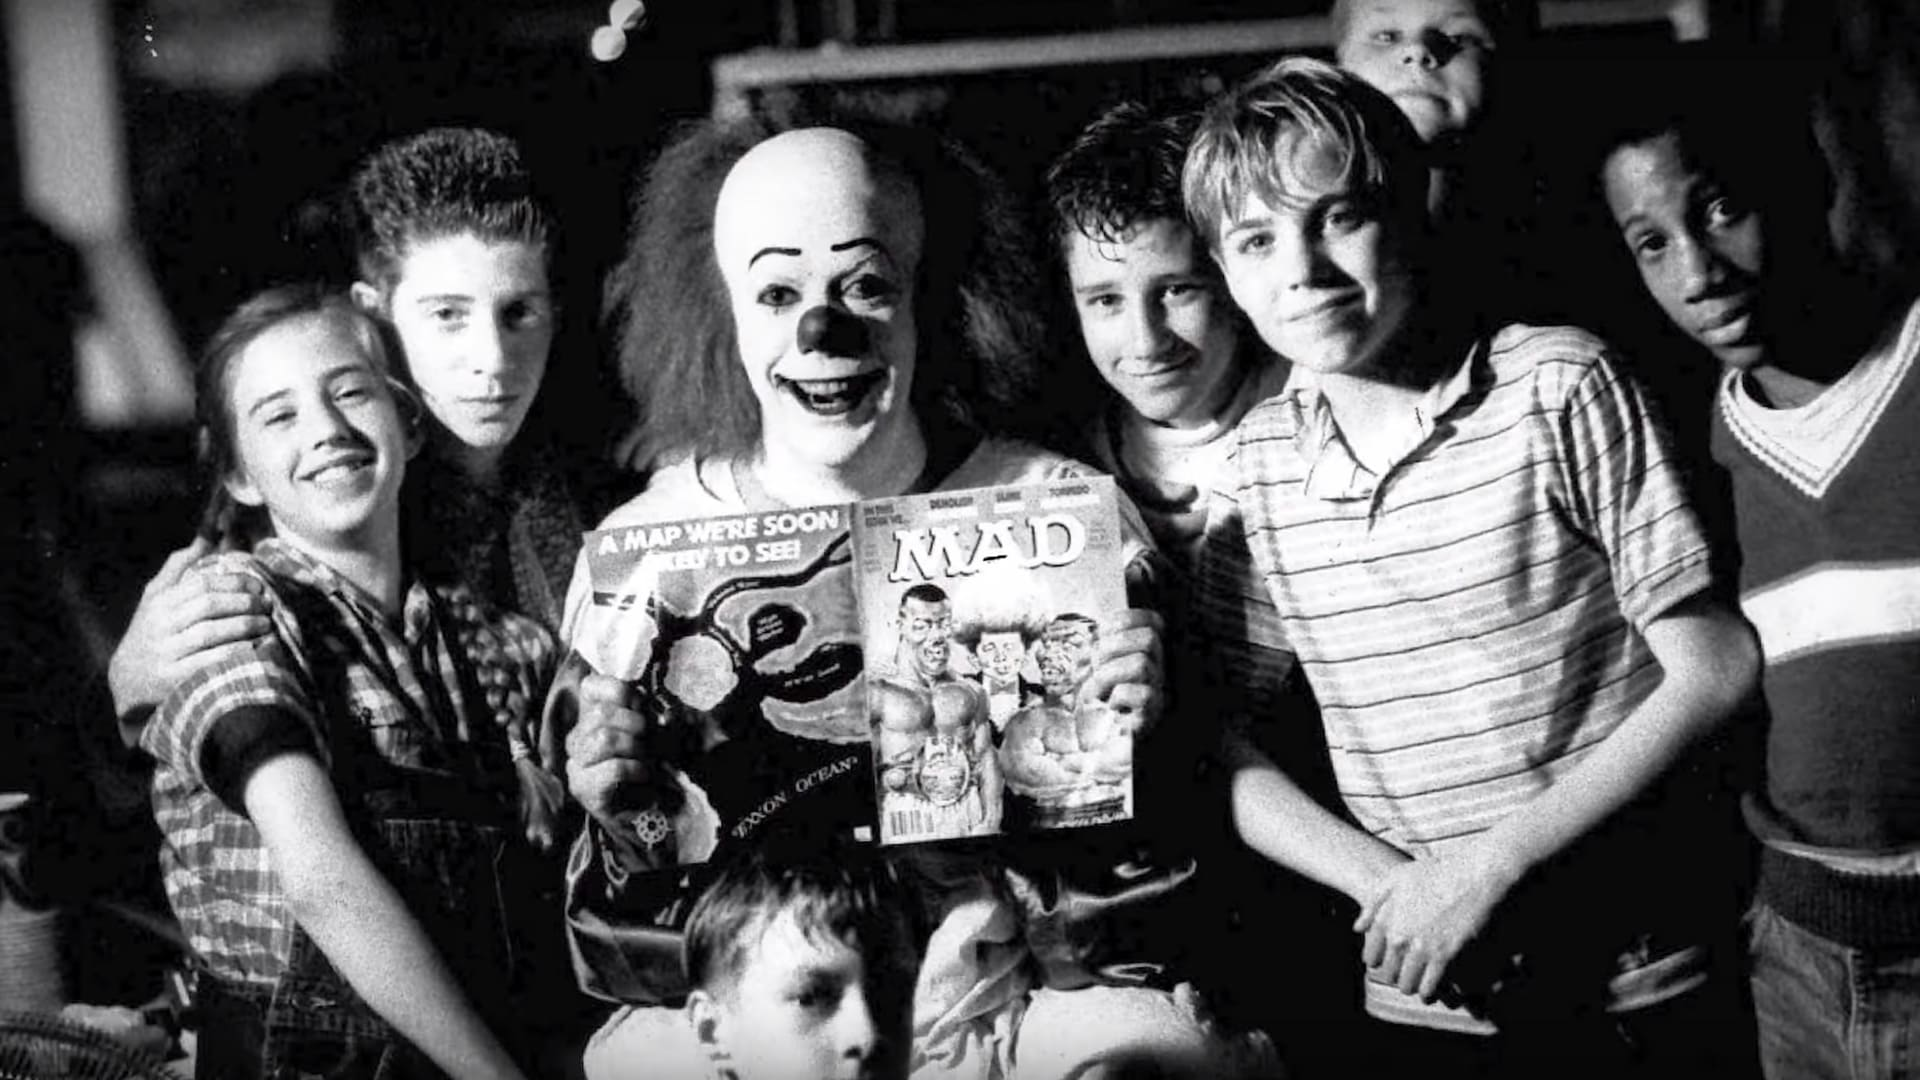 Pennywise: The Story of IT